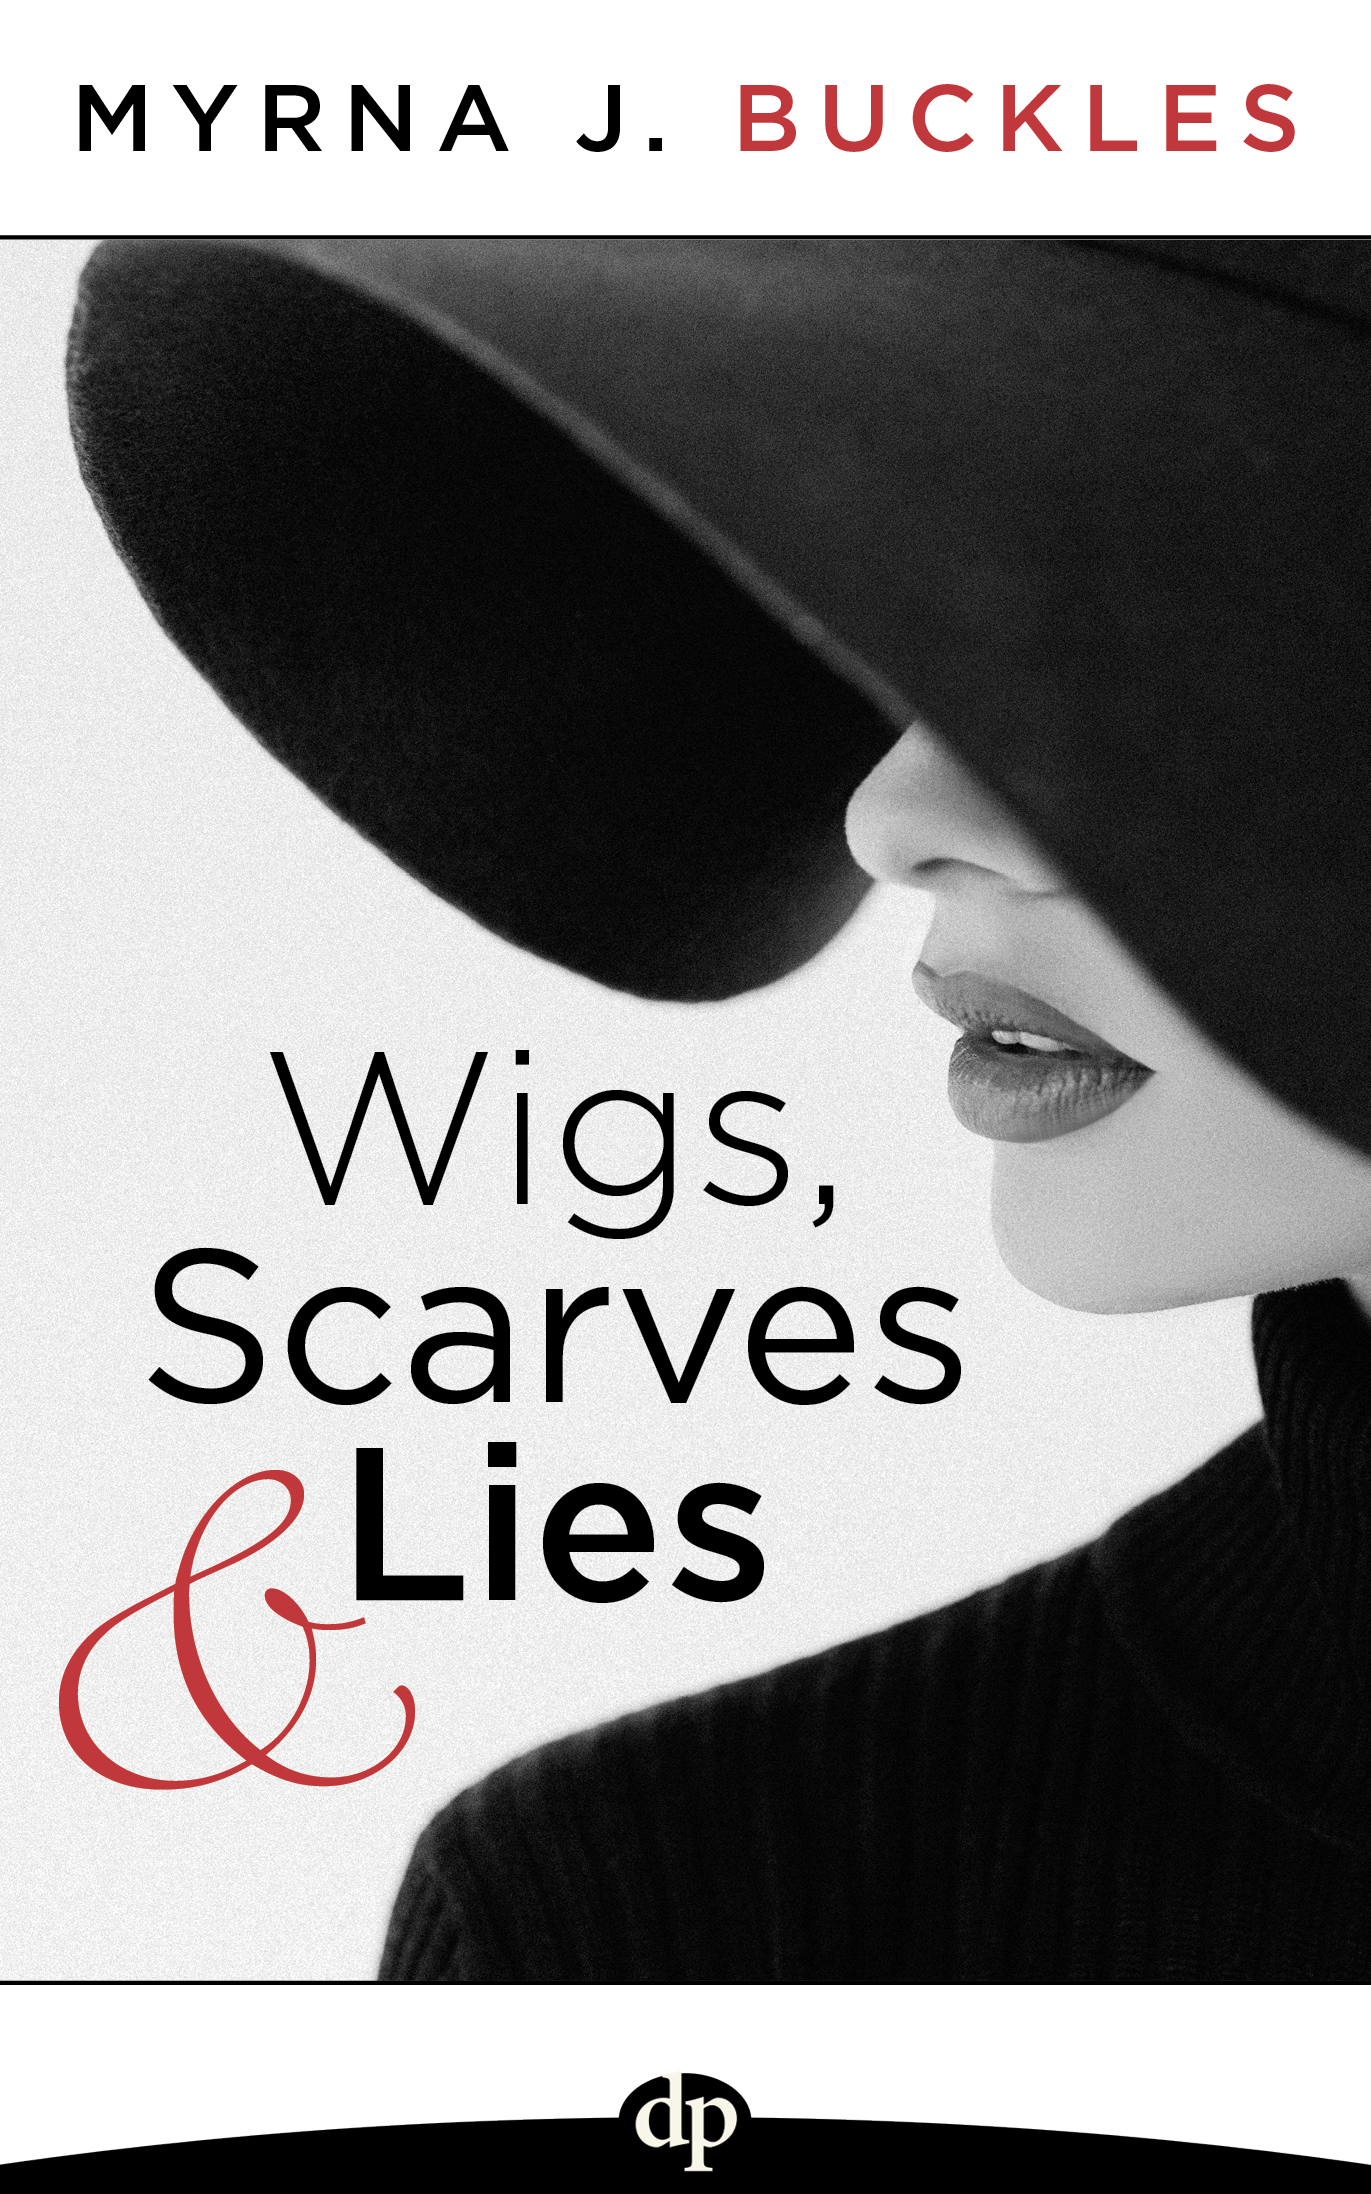 Buckles_Wigs,Scares and Lies_EBK_final.jpg